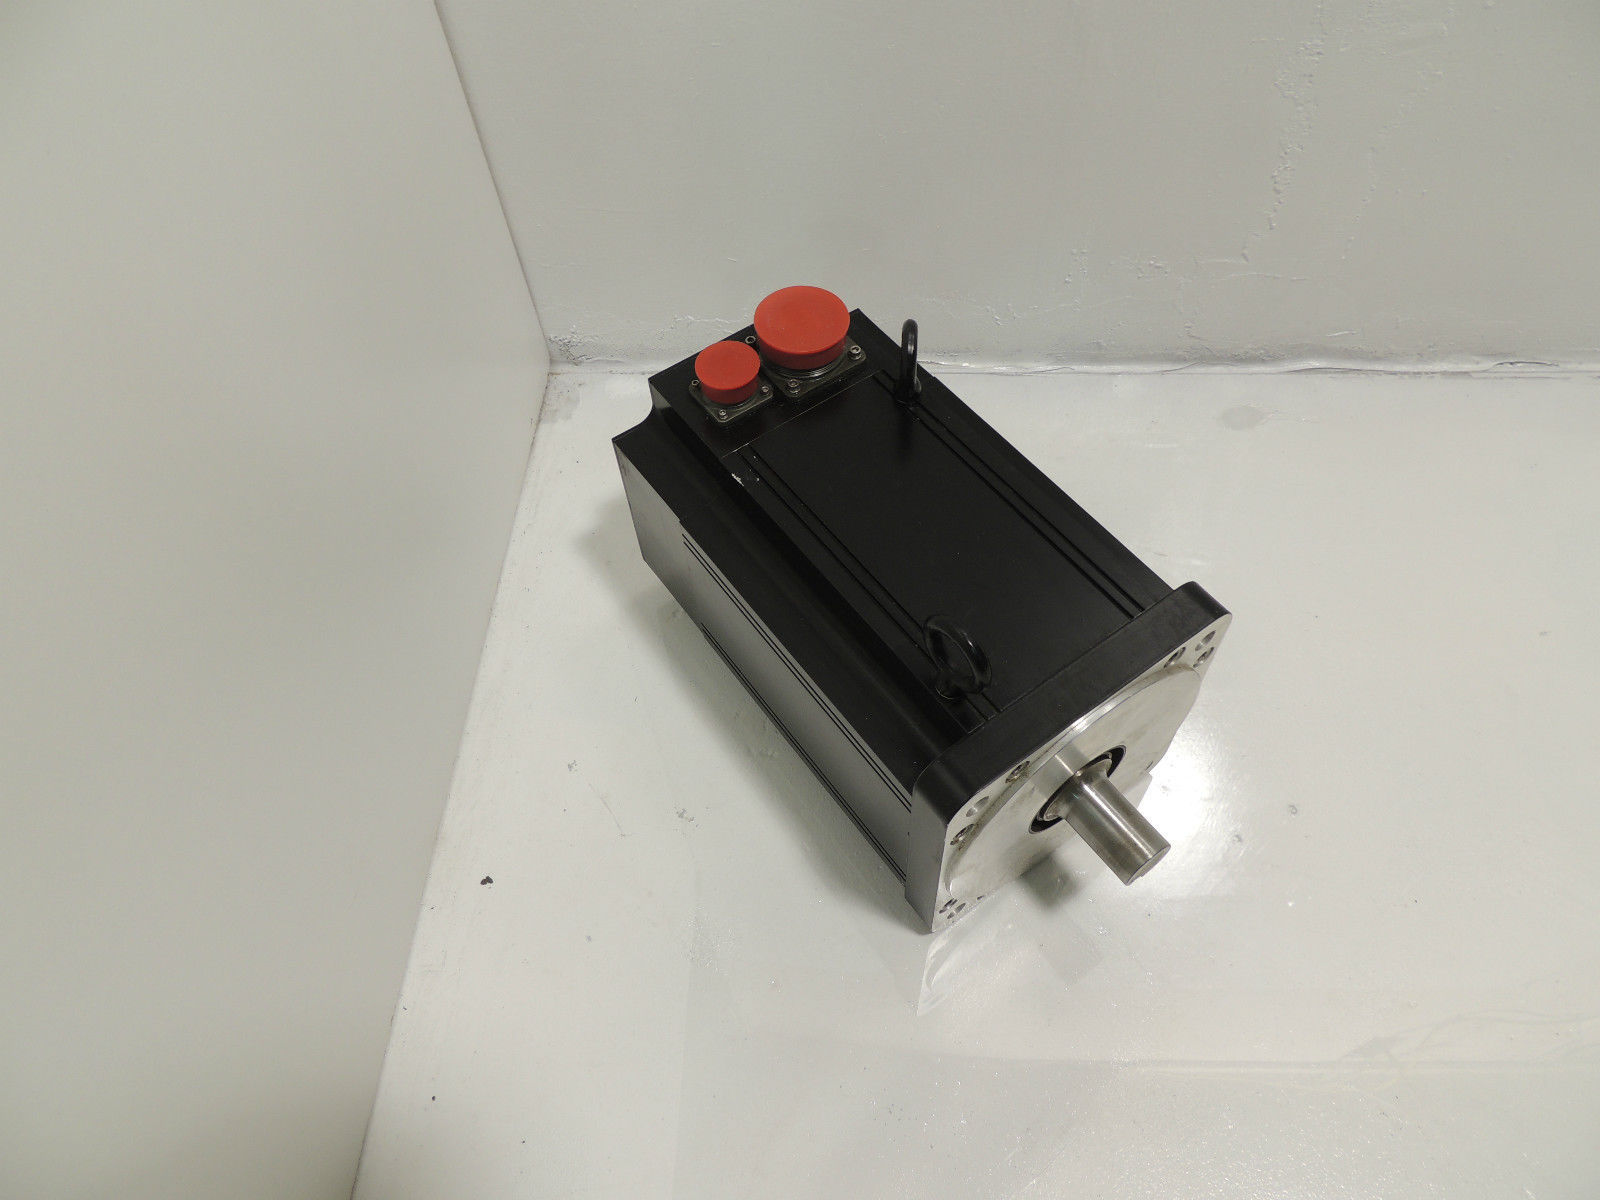 New Mts Automation Mpm1901 1766 Mpm19011766 Servo Motor 13